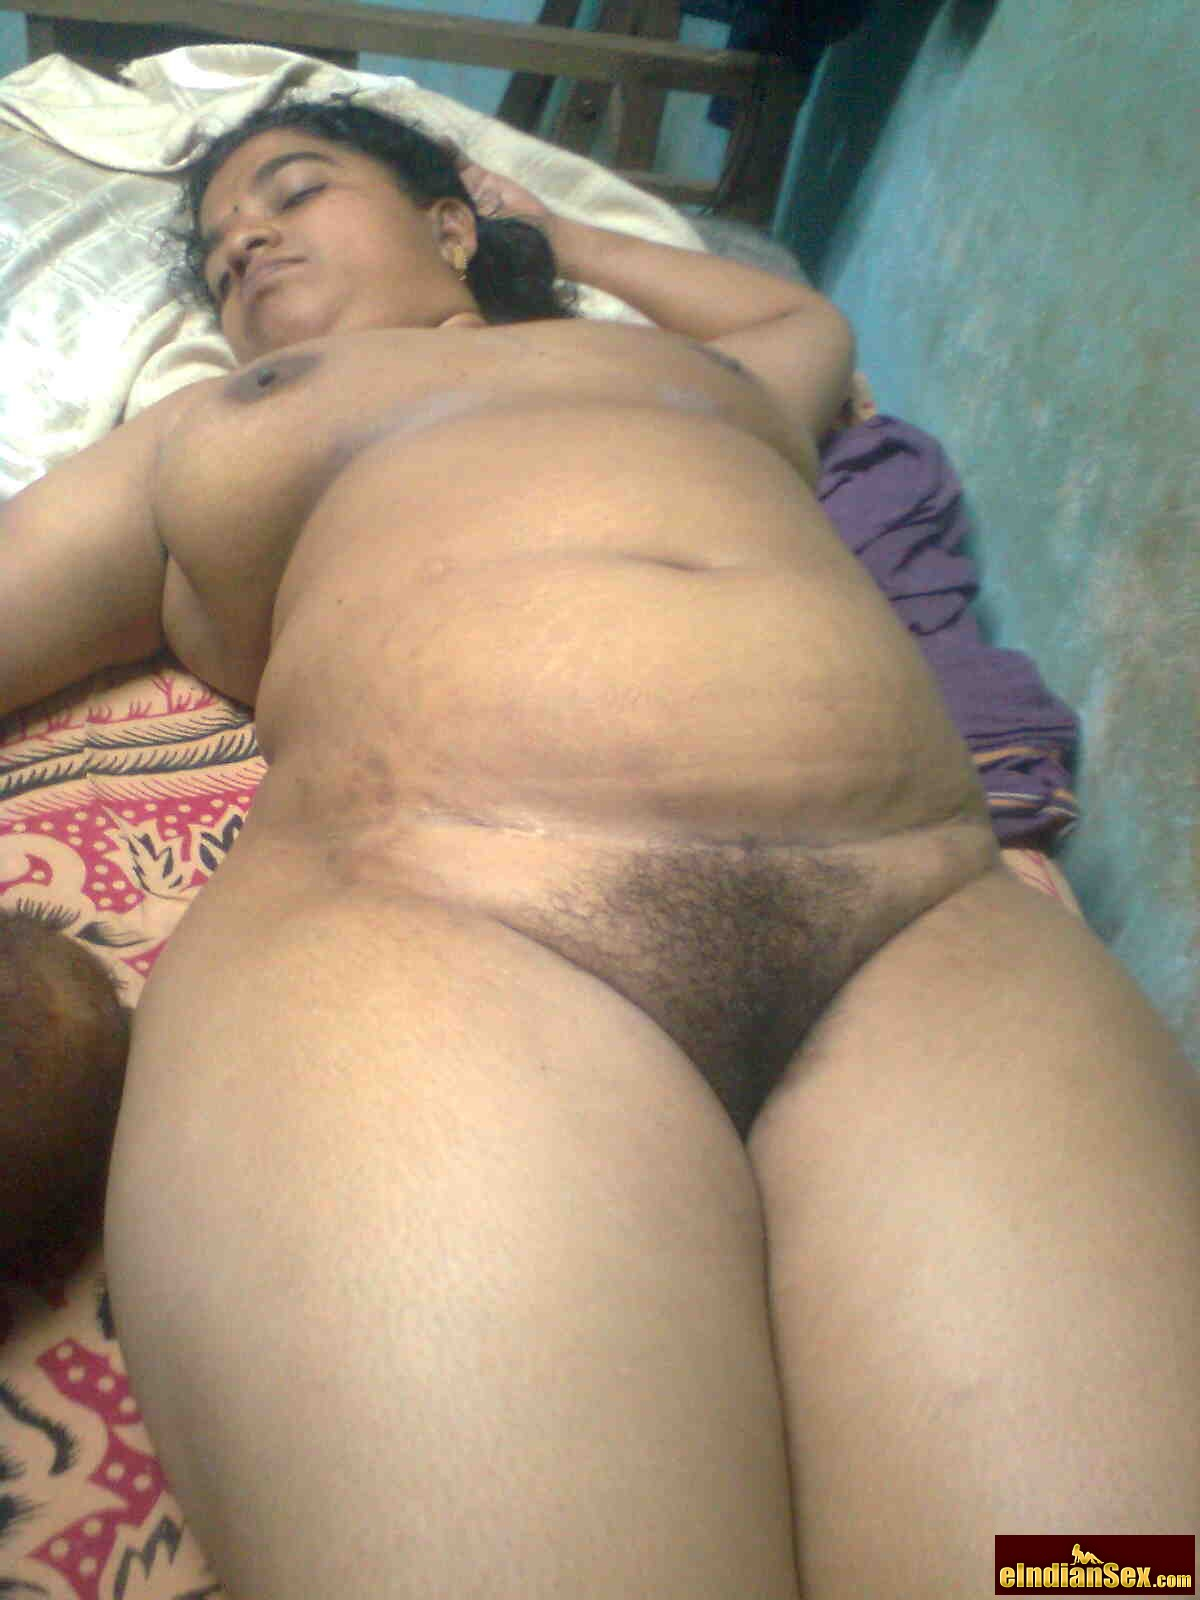 You were Tamil aunty big pussy seems me